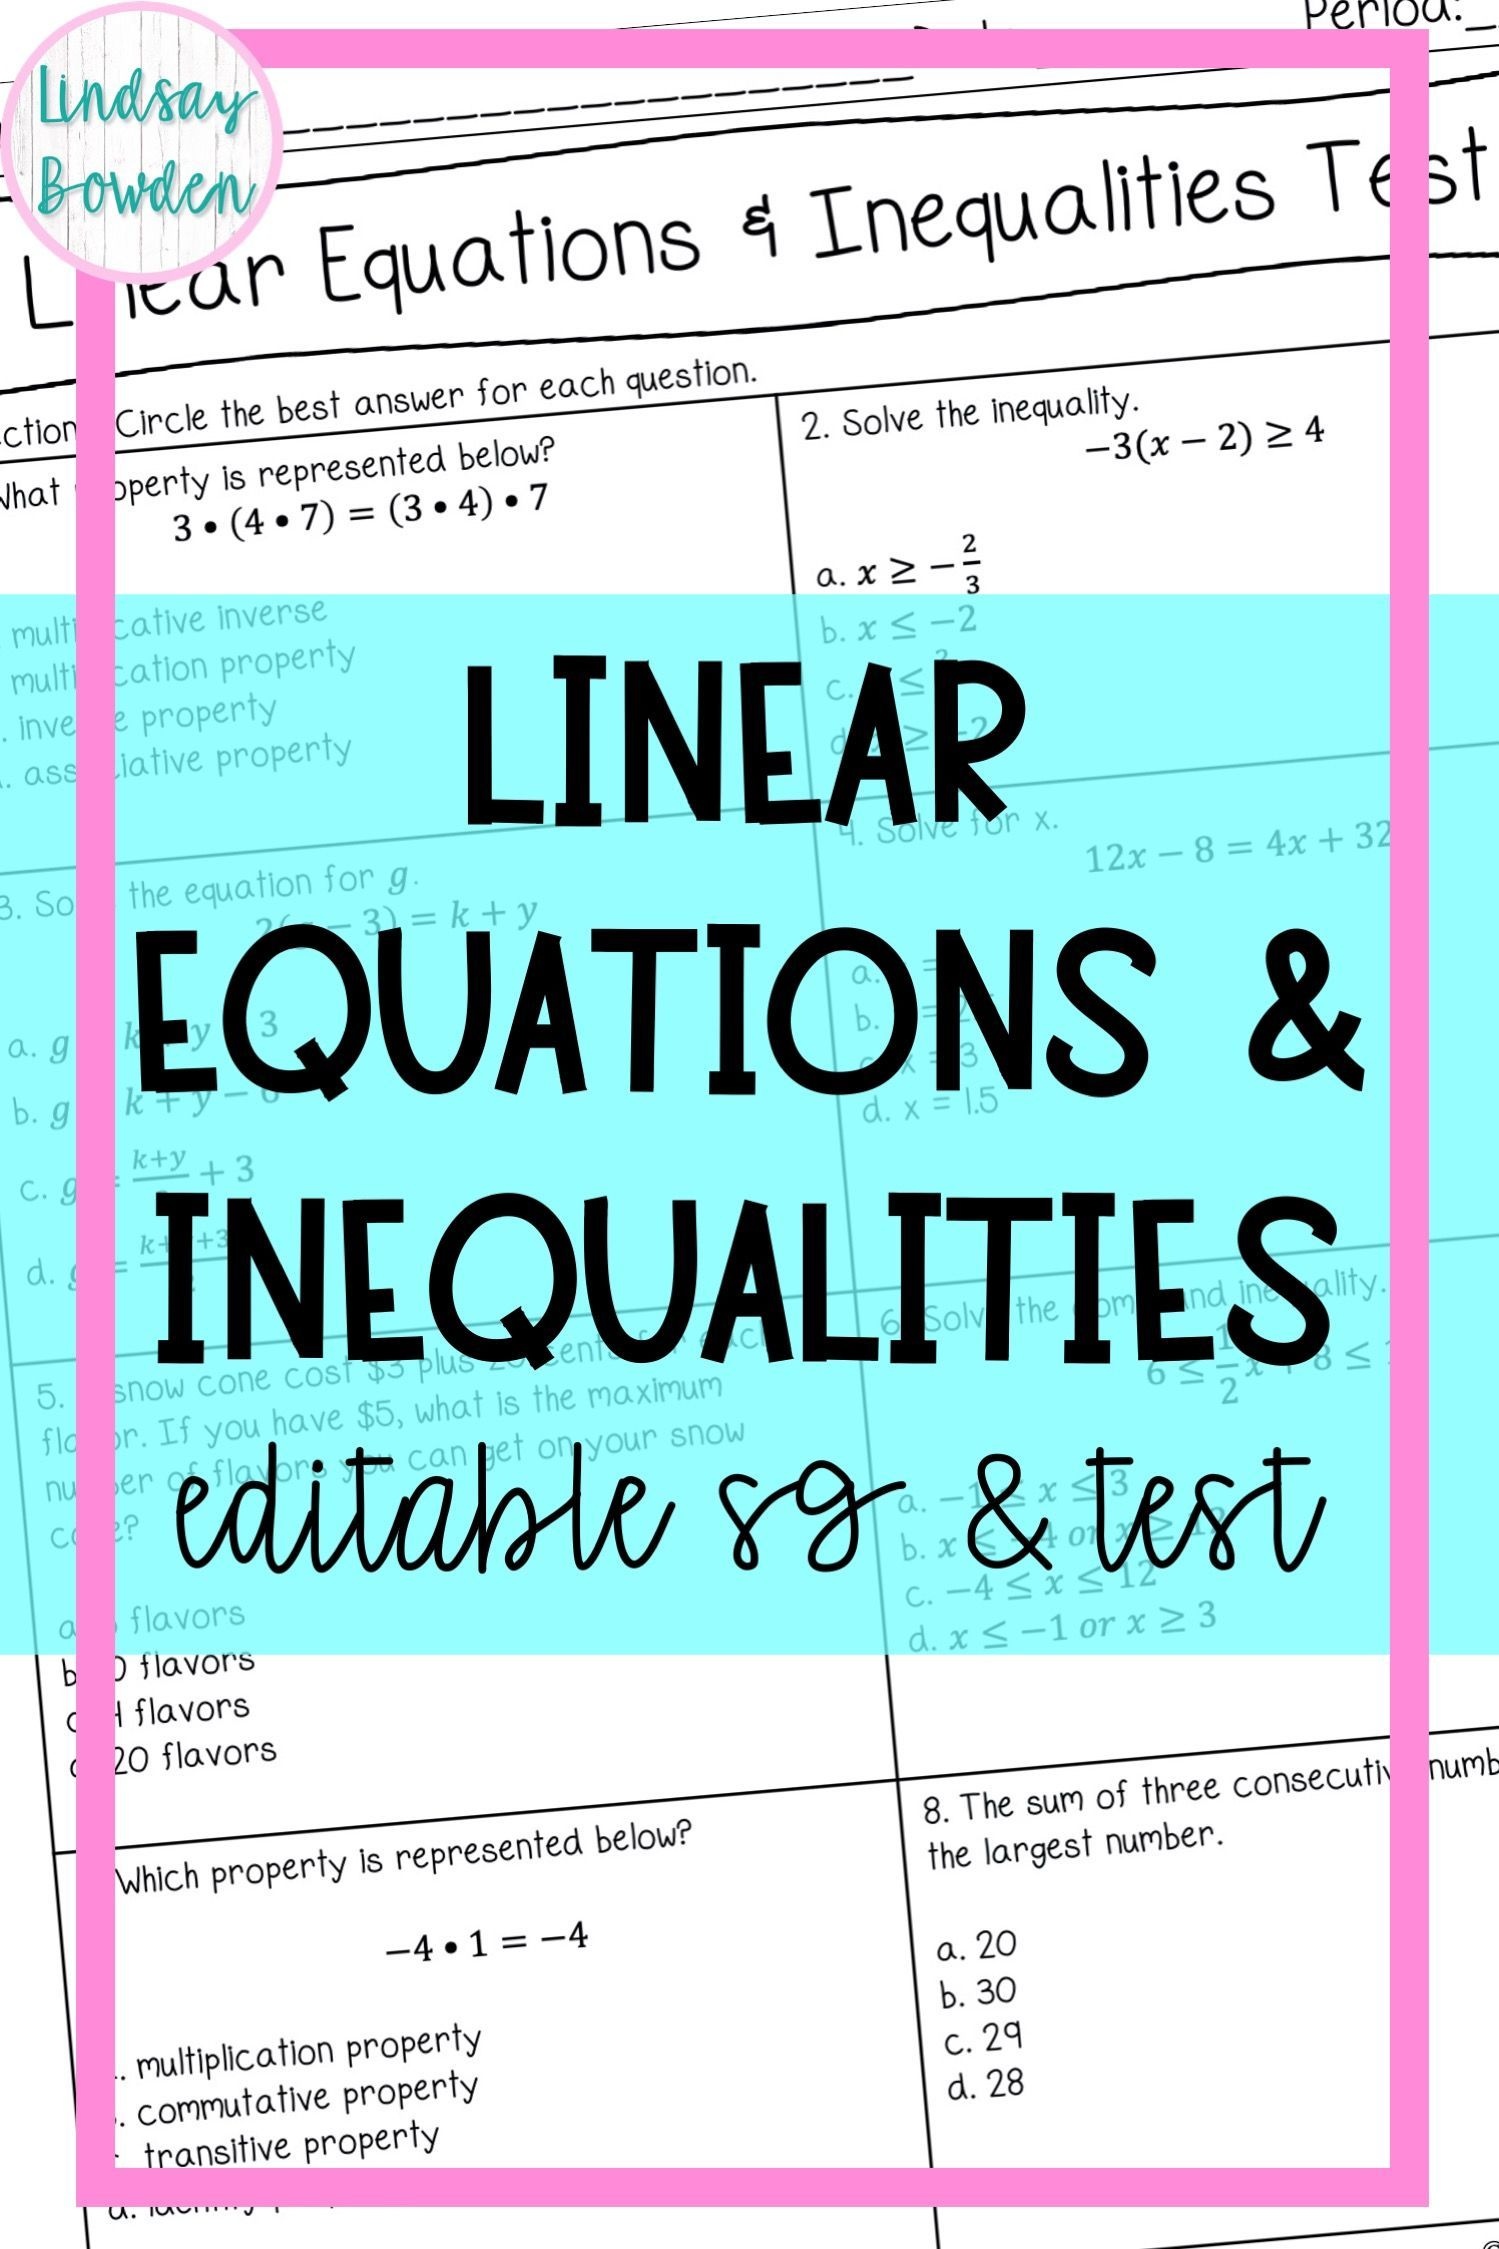 Linear Equations And Inequalities Test With Study Guide In